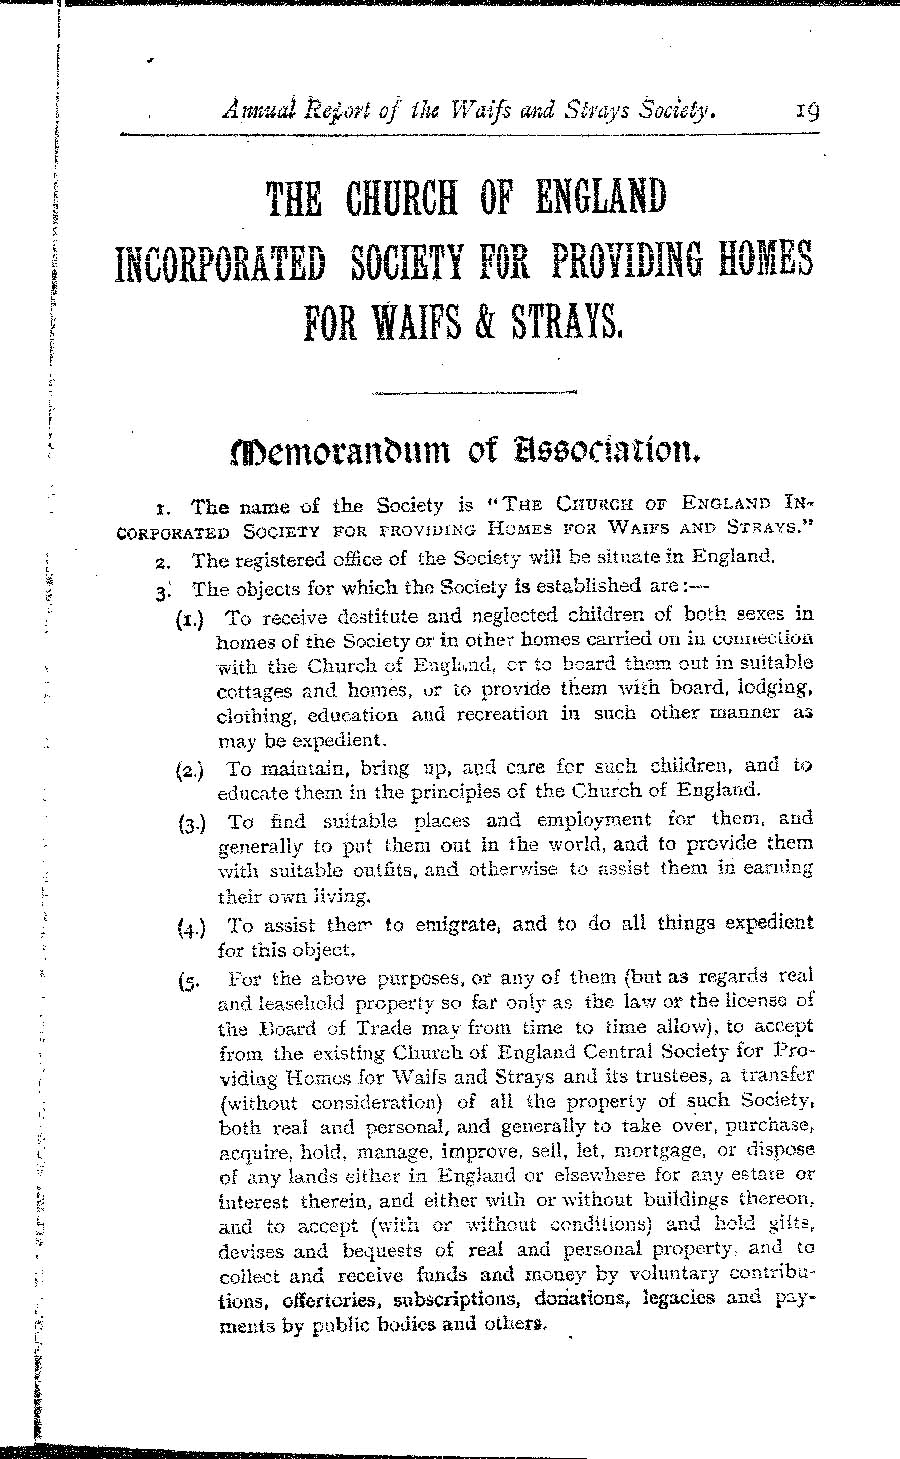 Annual Report 1896 - page 1